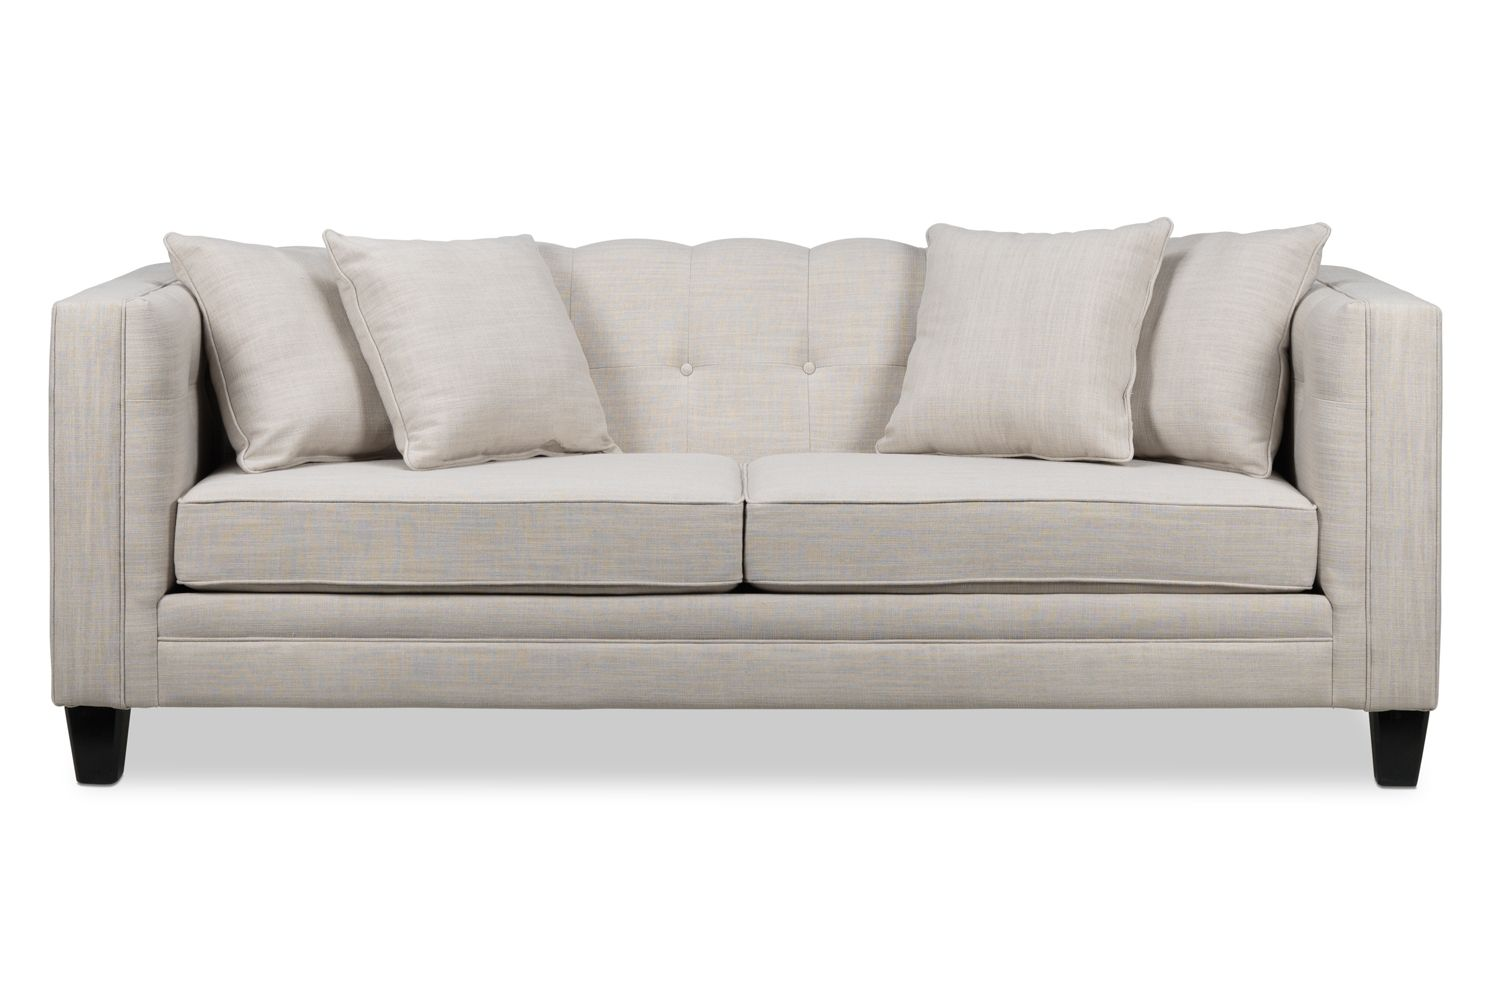 Living Room Furniture The Luna Collection Sofa